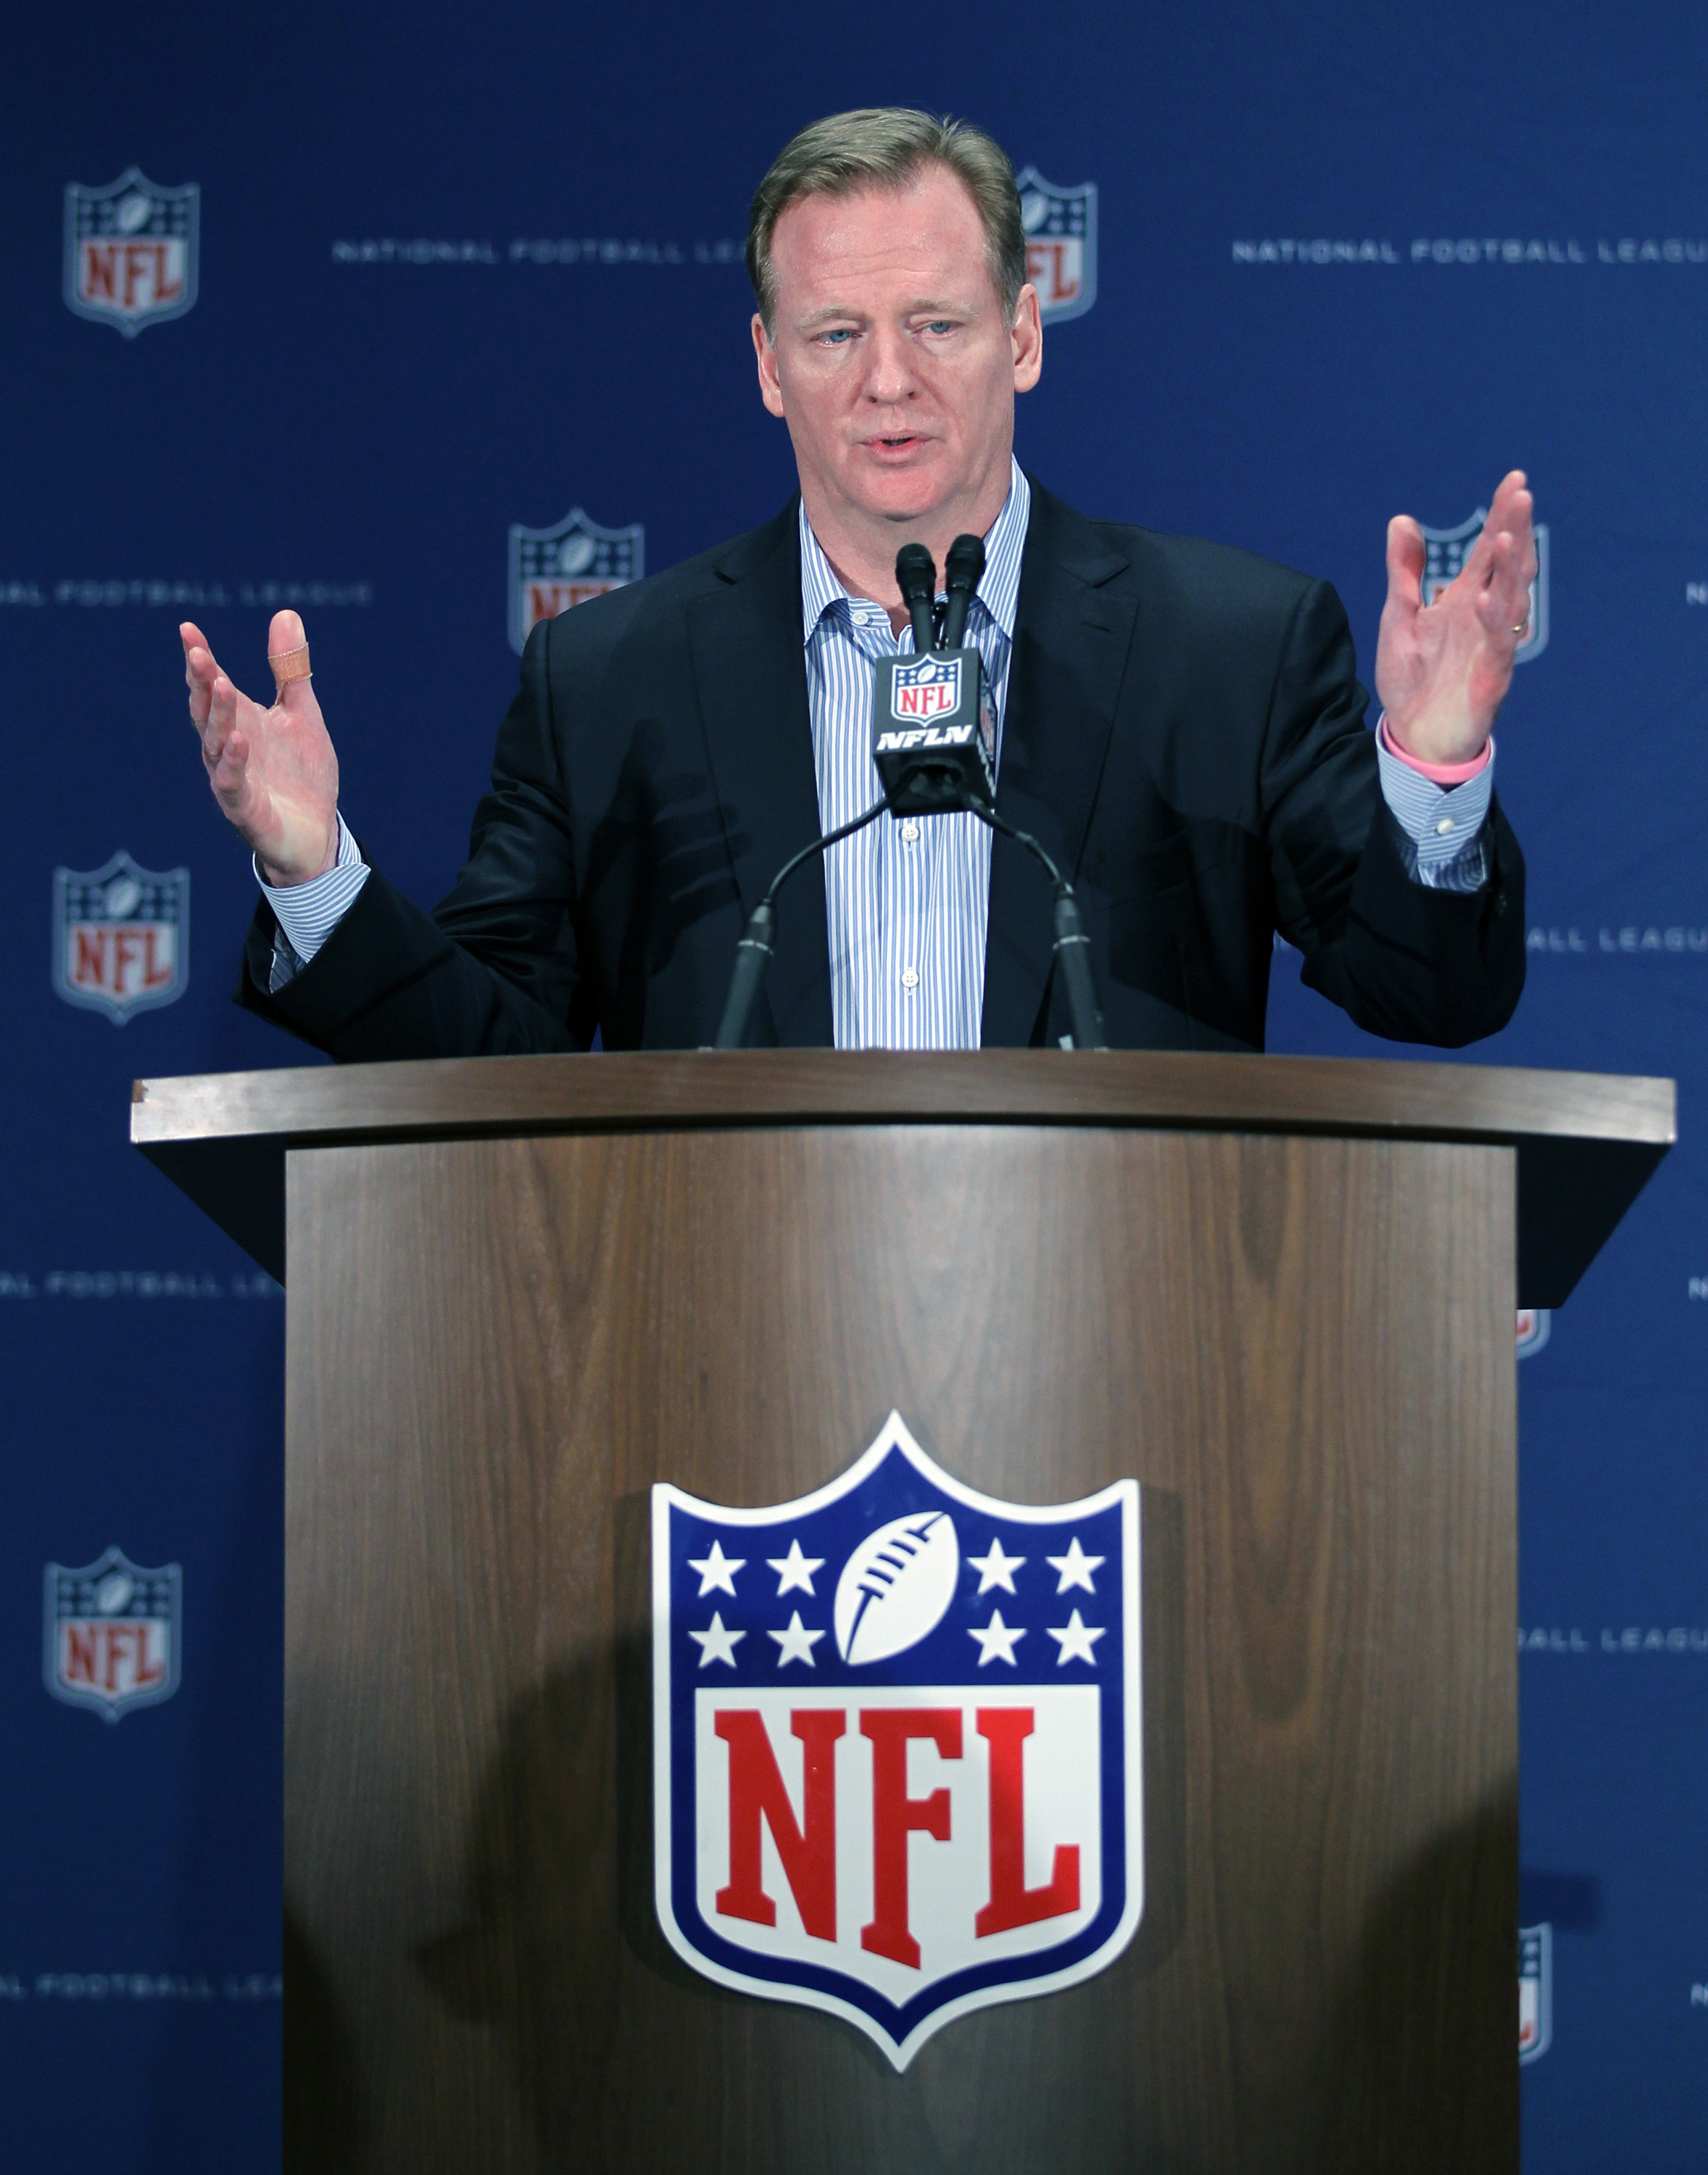 FILE - In this March 23, 2016, file photo, NFL Commissioner Roger Goodell gestures during a press conference at the NFL owners meeting in Boca Raton, Fla. The NFL has demanded The New York Times retract a story that called the league's concussion research